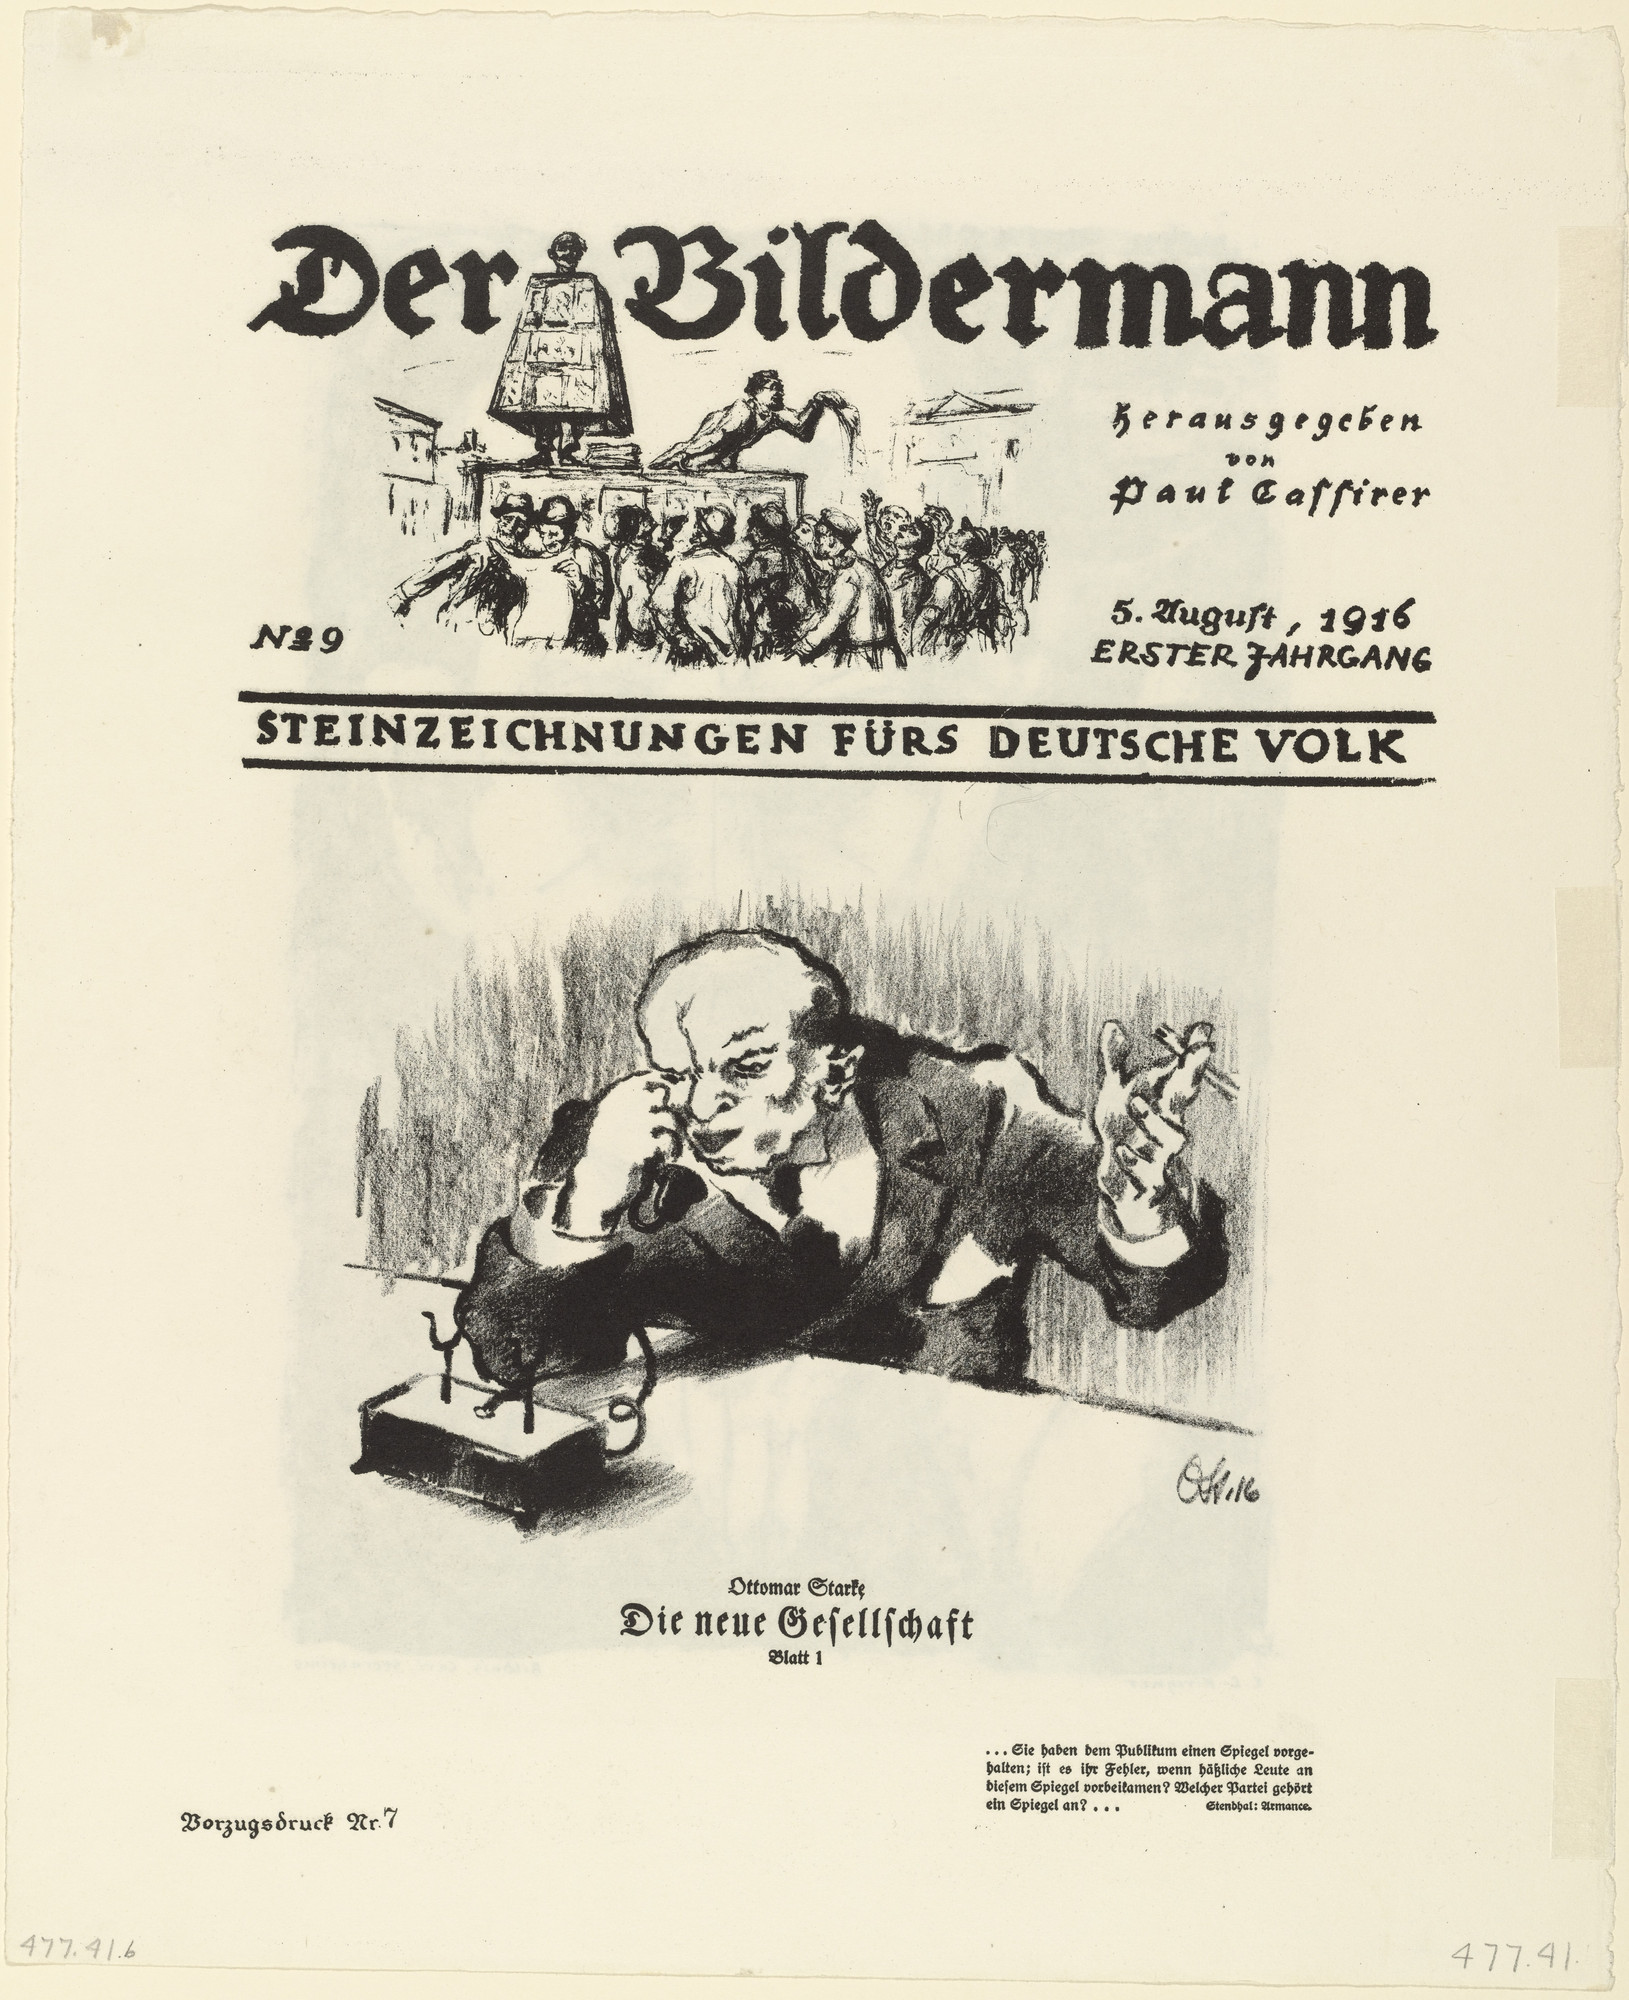 Ernst Ludwig Kirchner, Ottomar Starke. Portrait of Carl Sternheim (Bildnis Carl Sternheims) from the periodical Der Bildermann, No. 9 (recto); The New Society: Plate 1 (Die neue Gesellschaft: Blatt 1) from the periodical Der Bildermann, No. 9 (verso). 1916